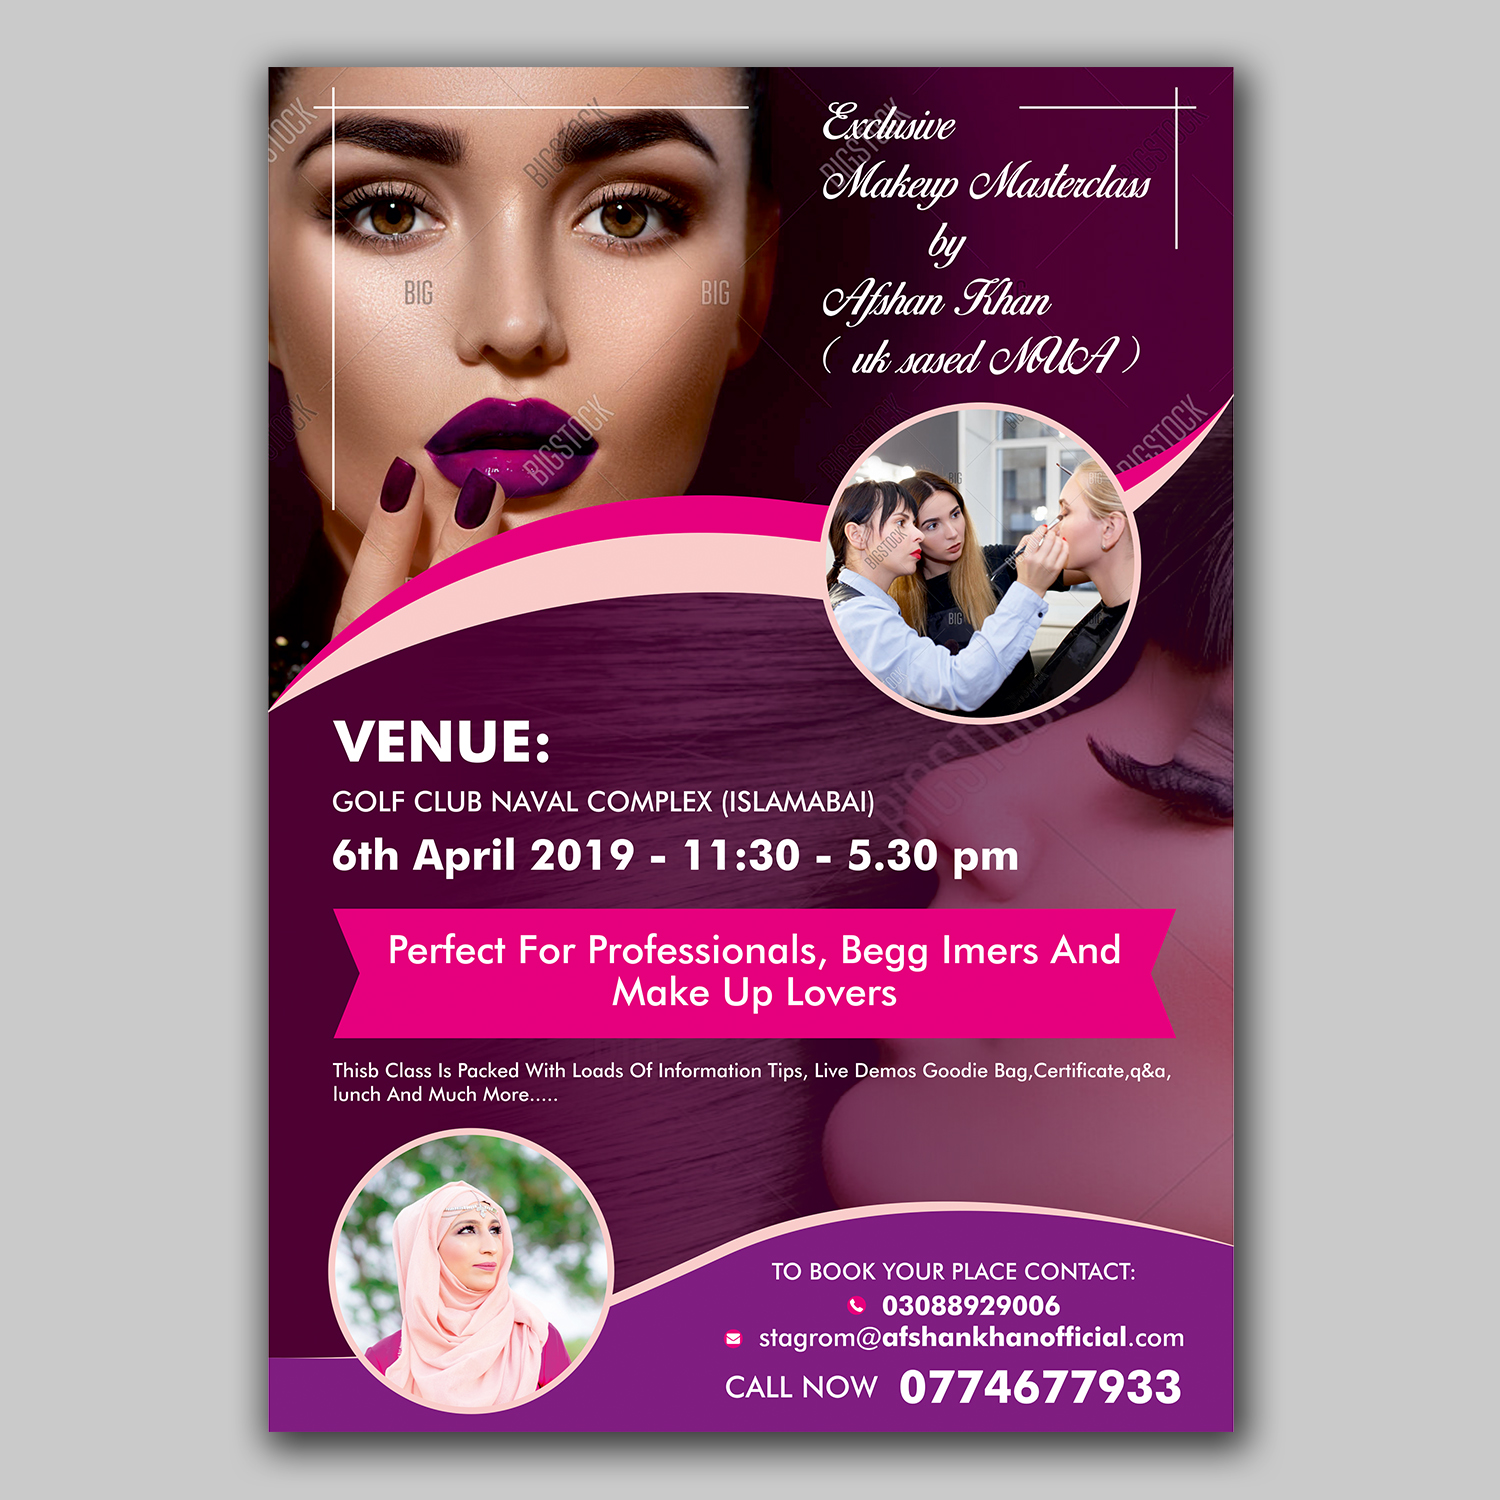 Elegant, Playful, Hair And Beauty Flyer Design for a Company by